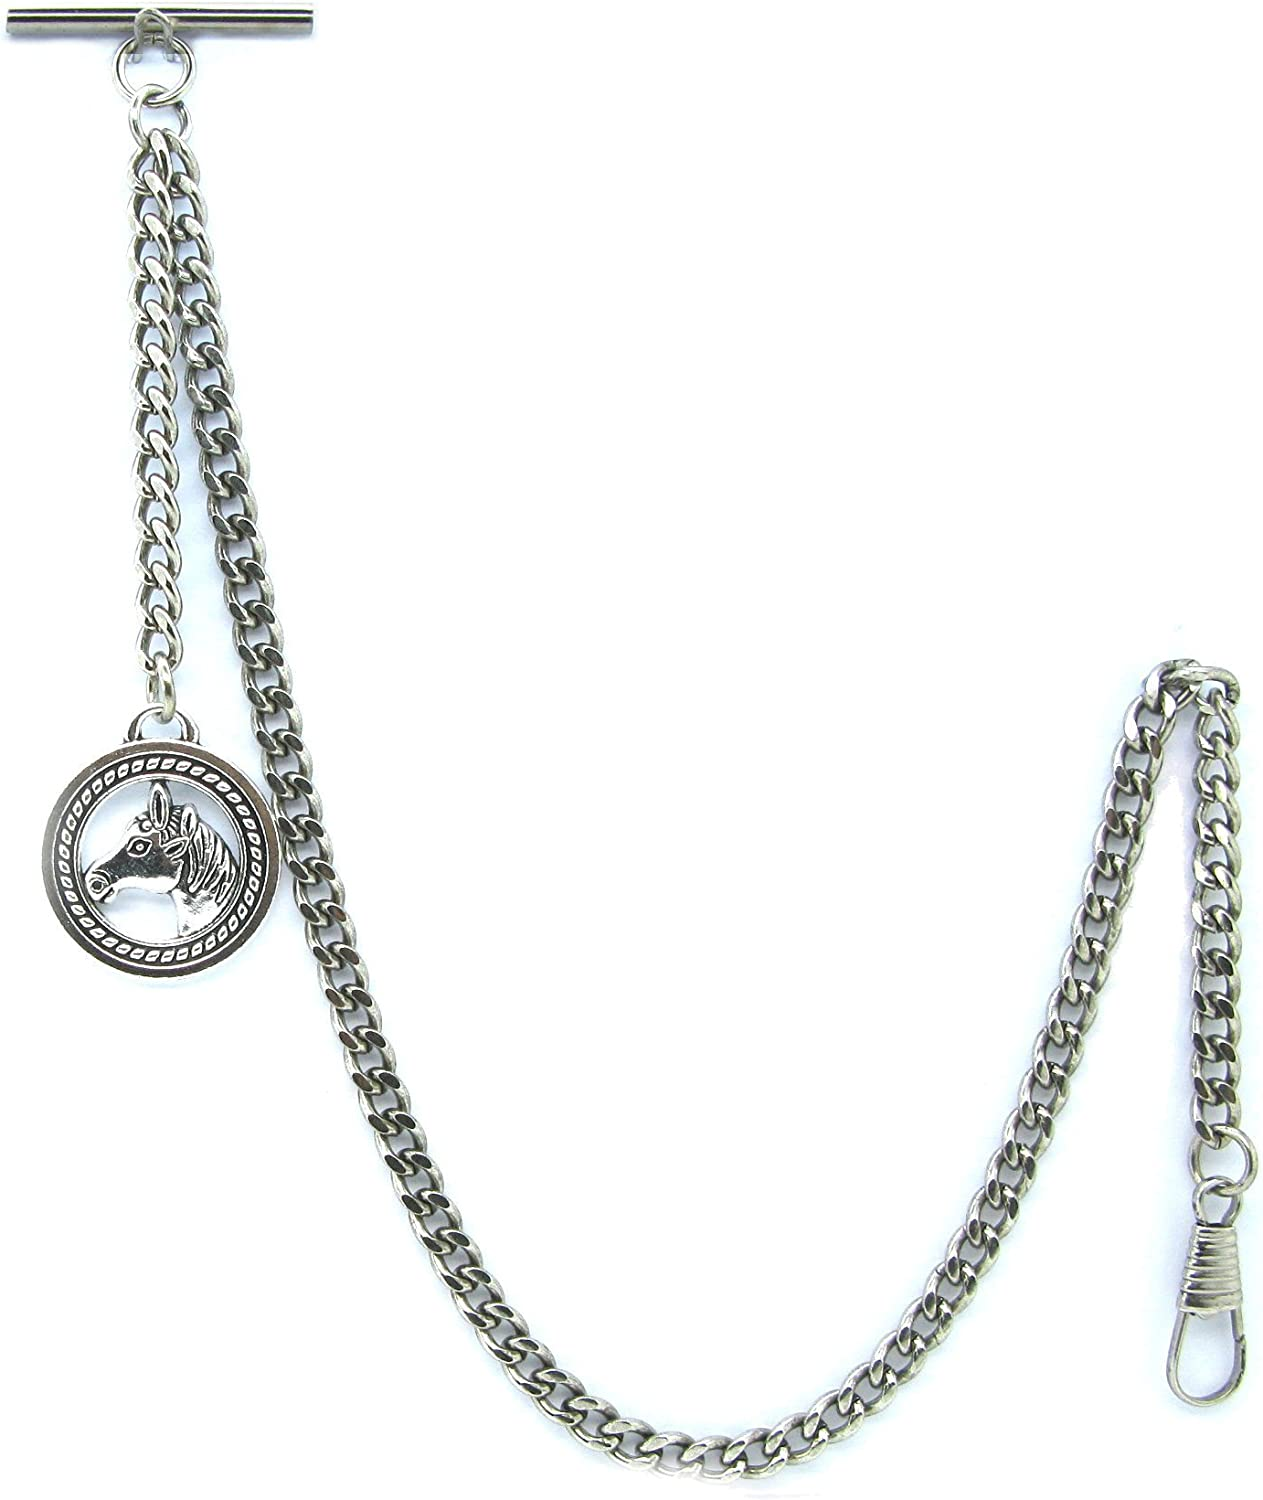 Albert Chain Silver Color Pocket Watch Men Vest Fashion for Max 61% OFF Chains